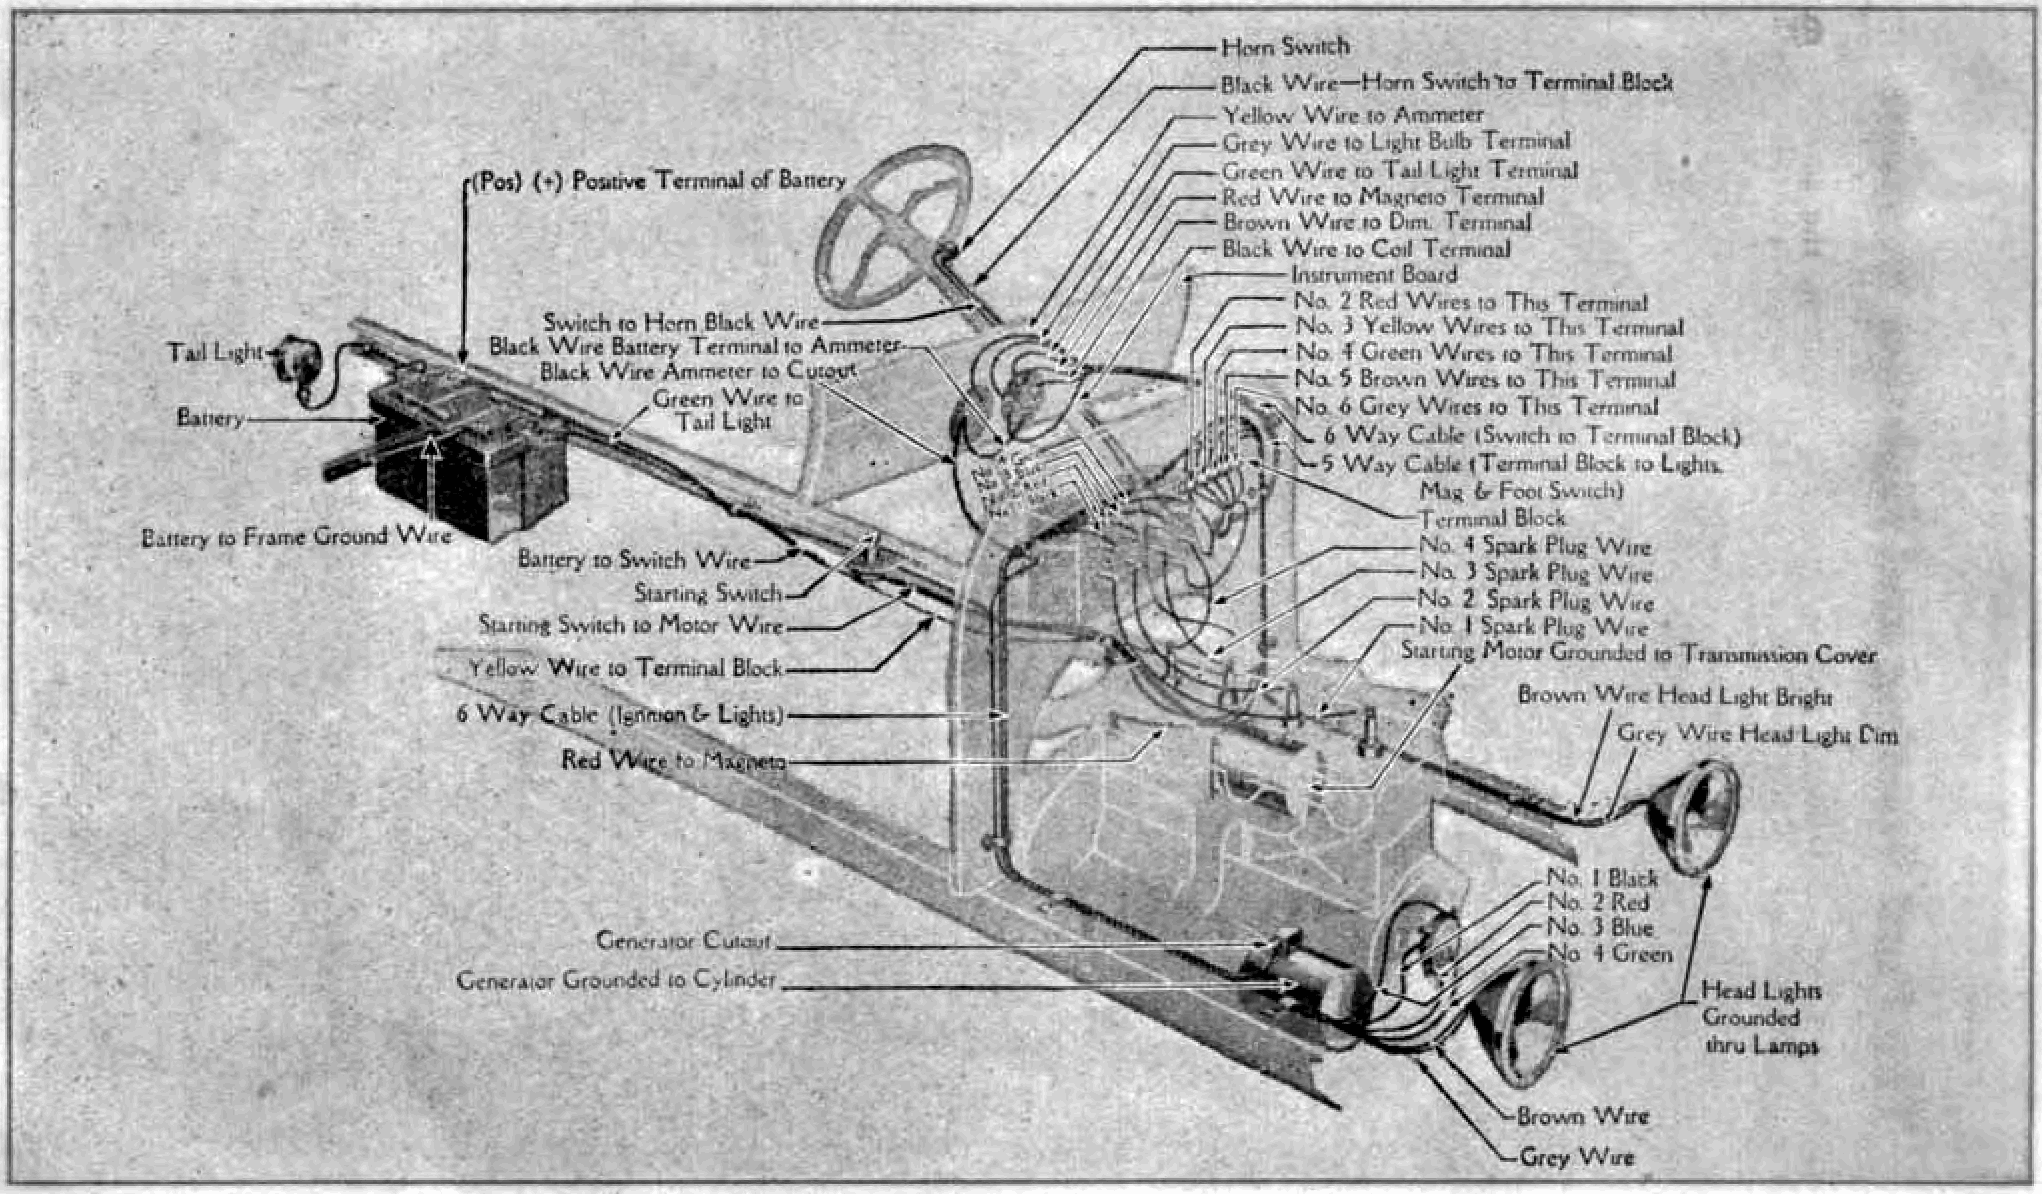 file ford model t 1919 d055 wiring diagram of cars equipped with a rh commons wikimedia org 1915 ford model t wiring diagram wiring diagram 1926 model t ford